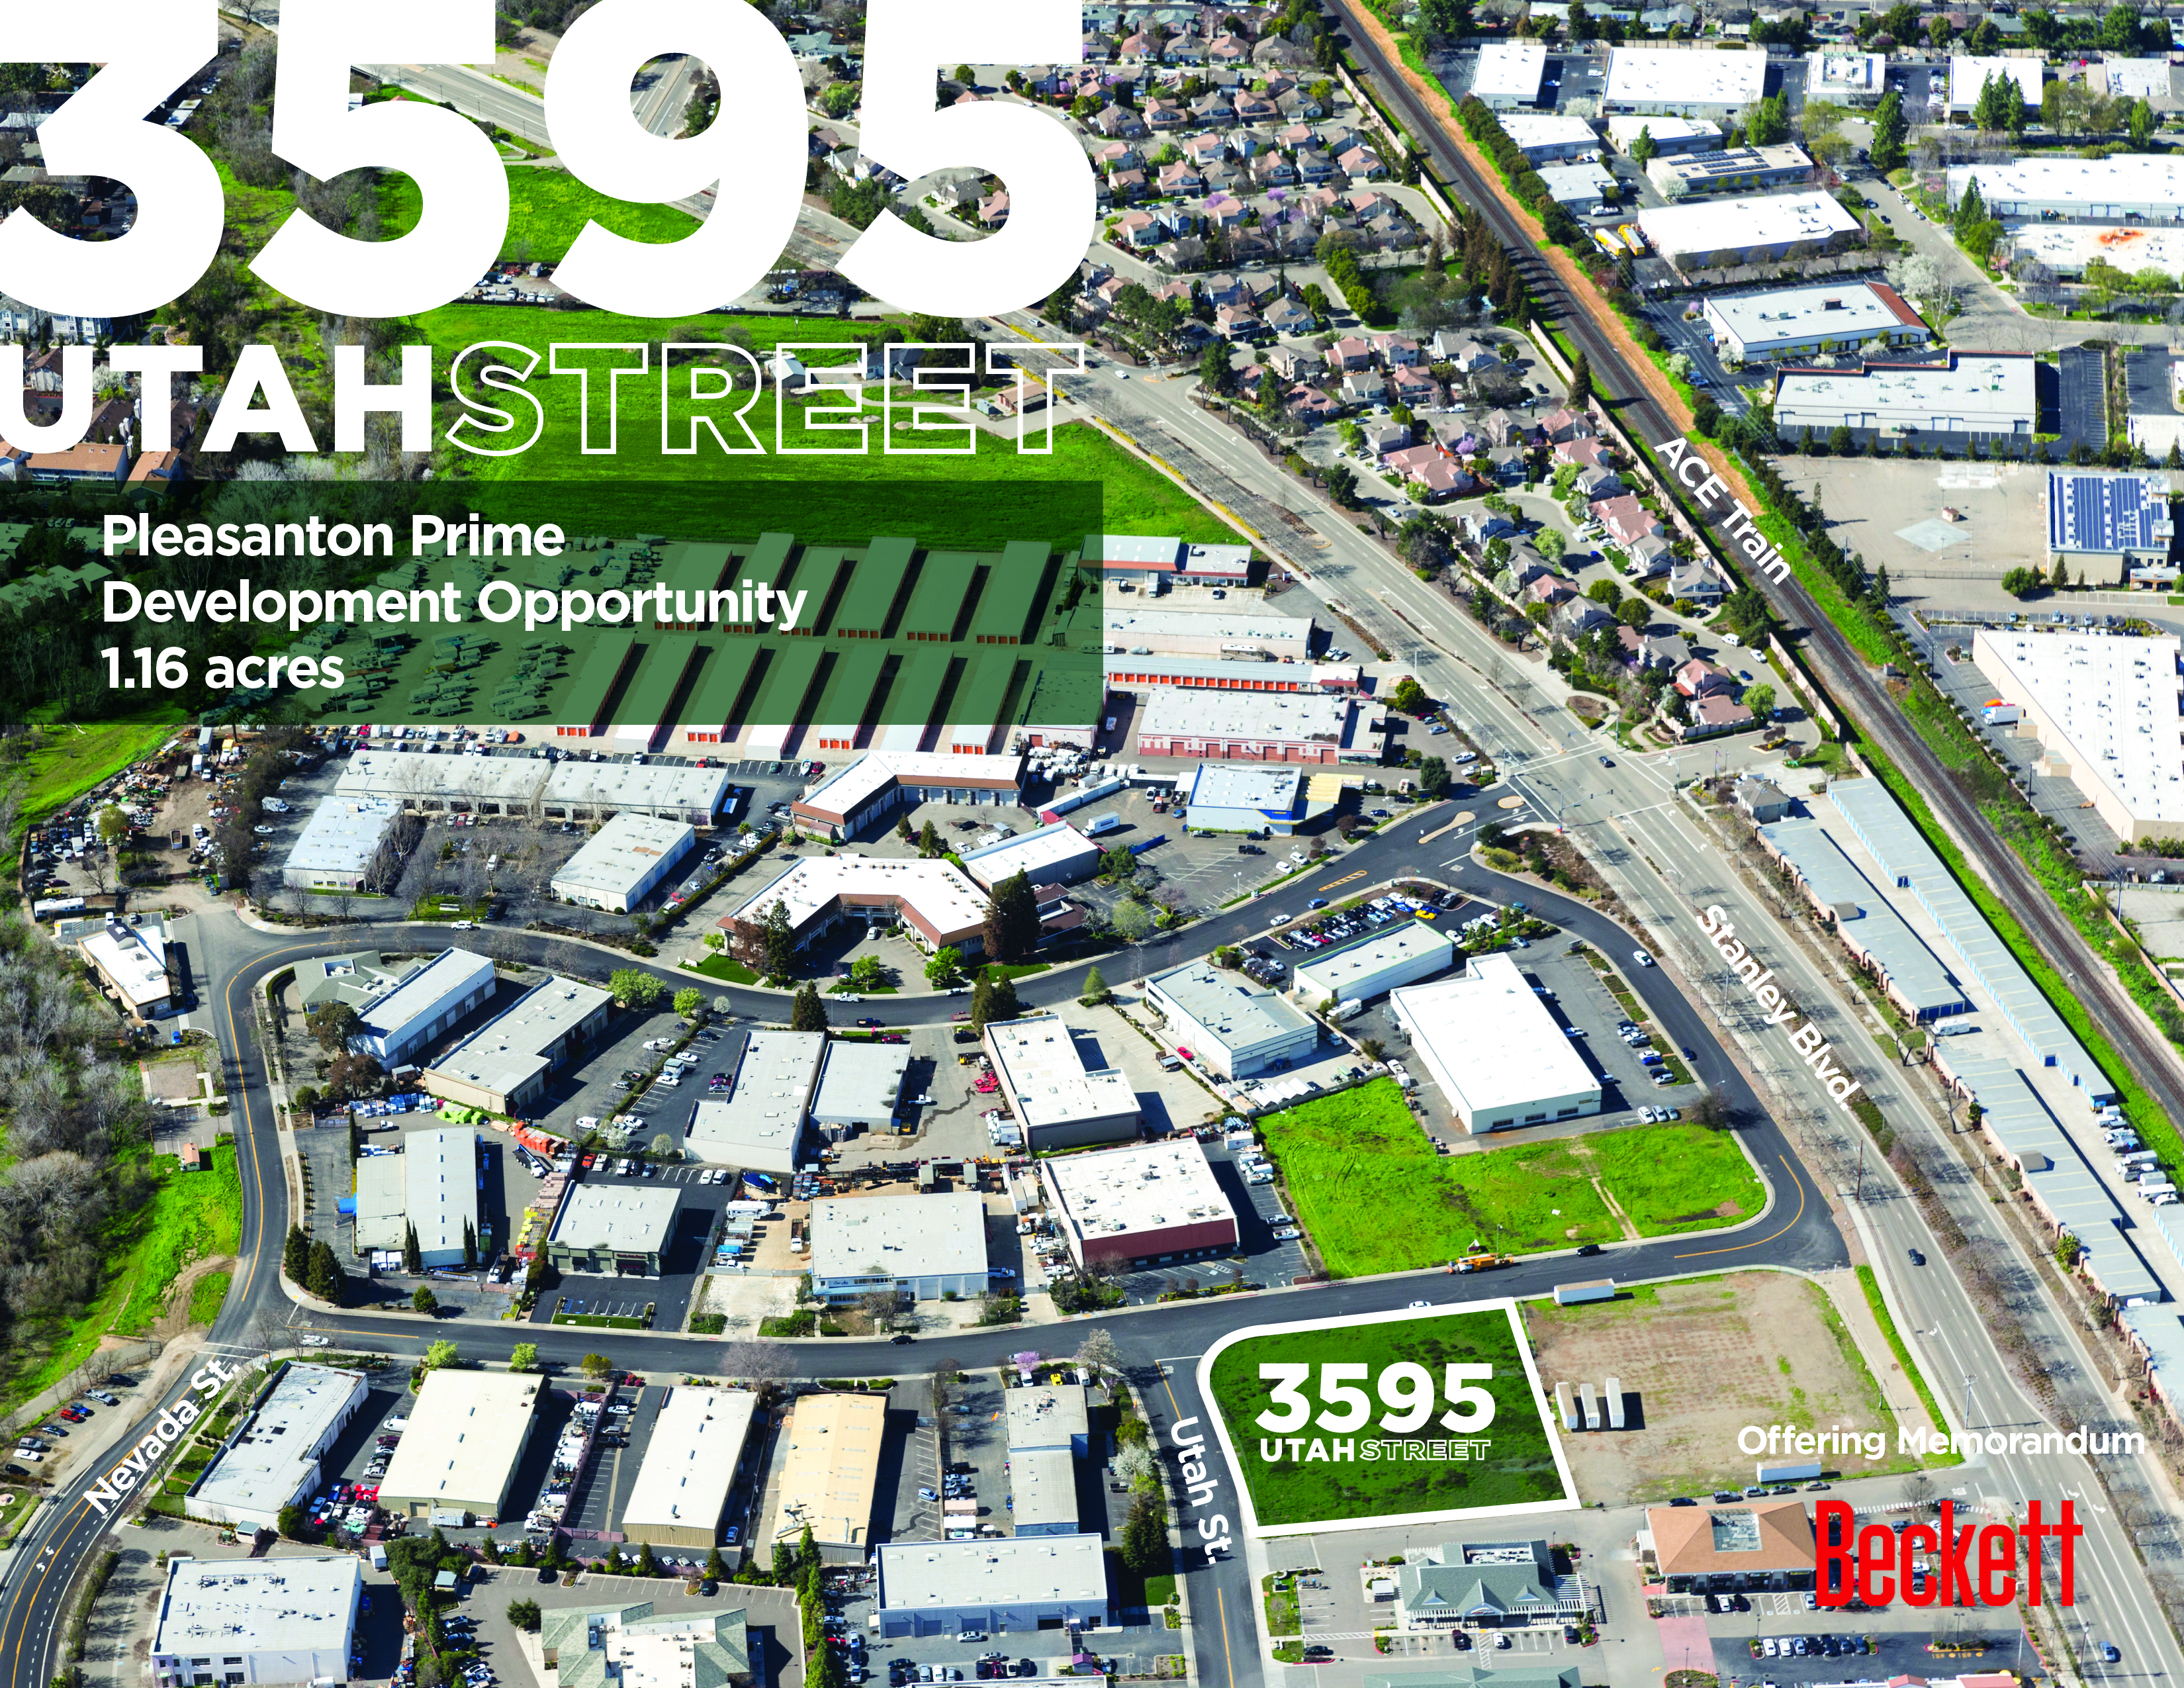 ON THE MARKET - 3595 Utah Street